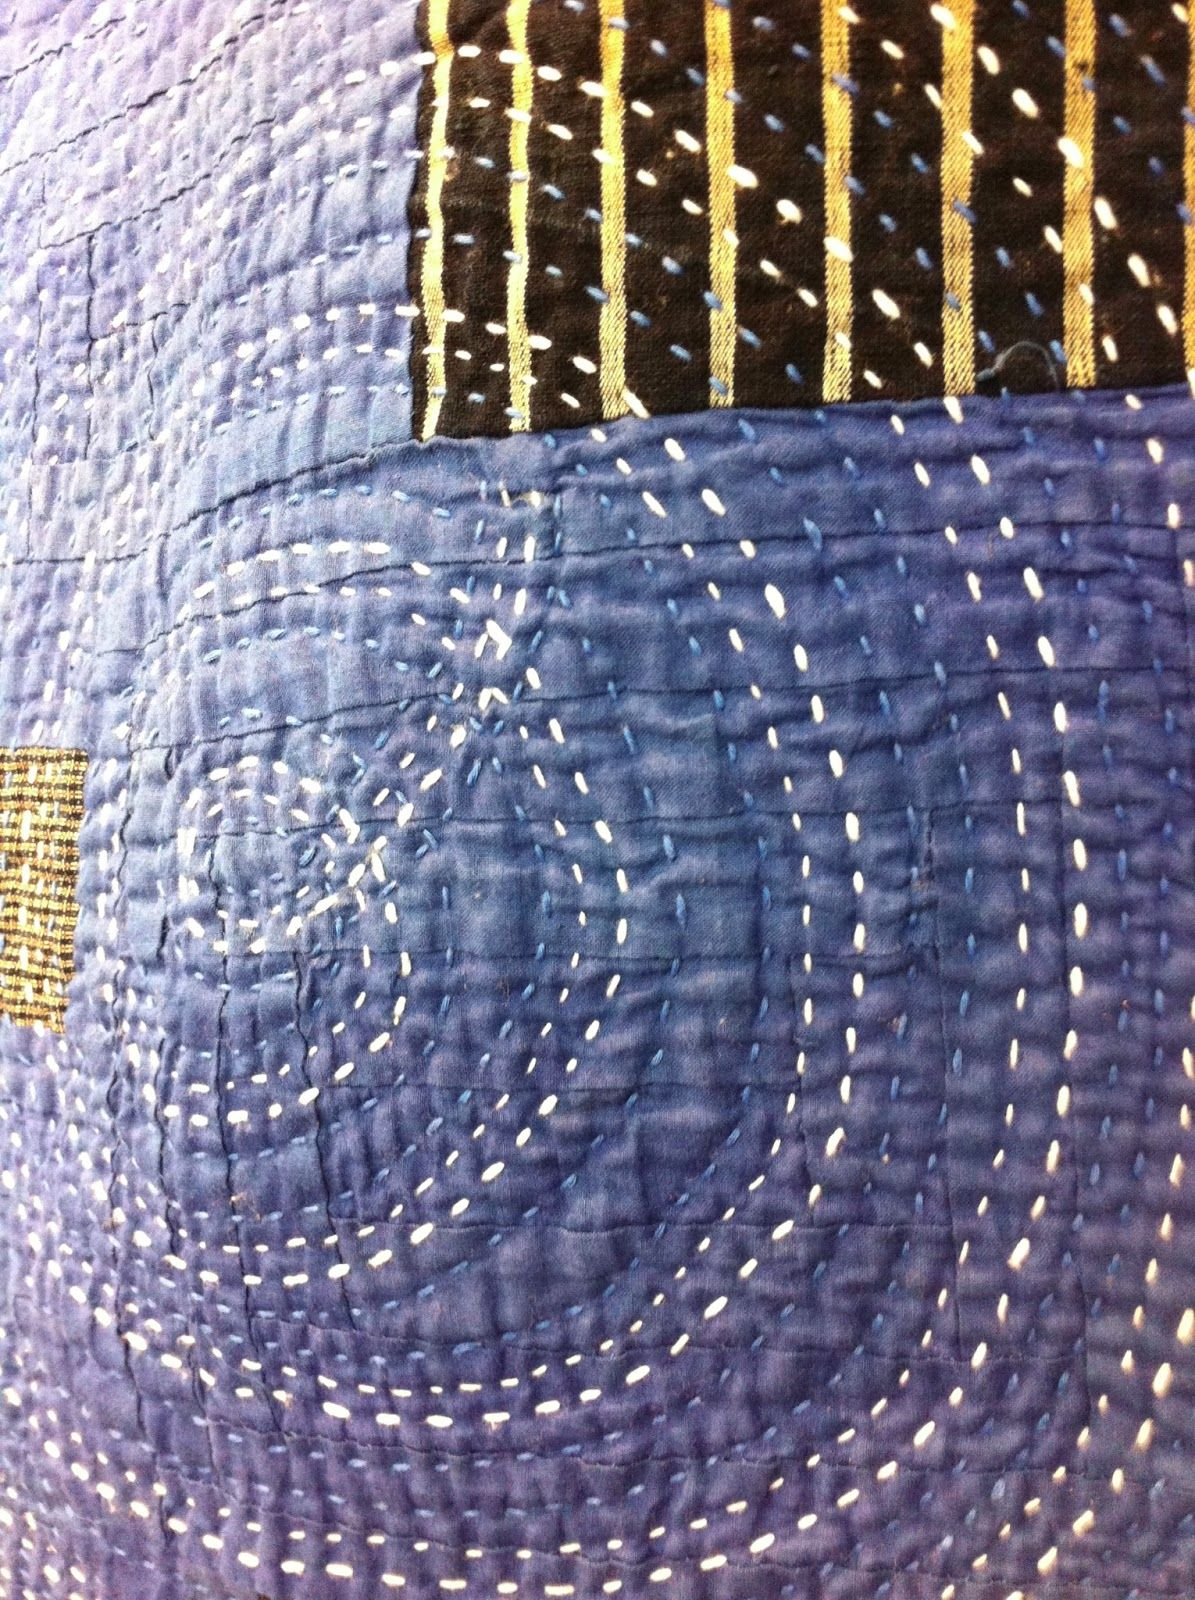 Embroidery stitching in two colors seen at the 2013 Tokyo Quilt Festival; photo by A Quilter at Night